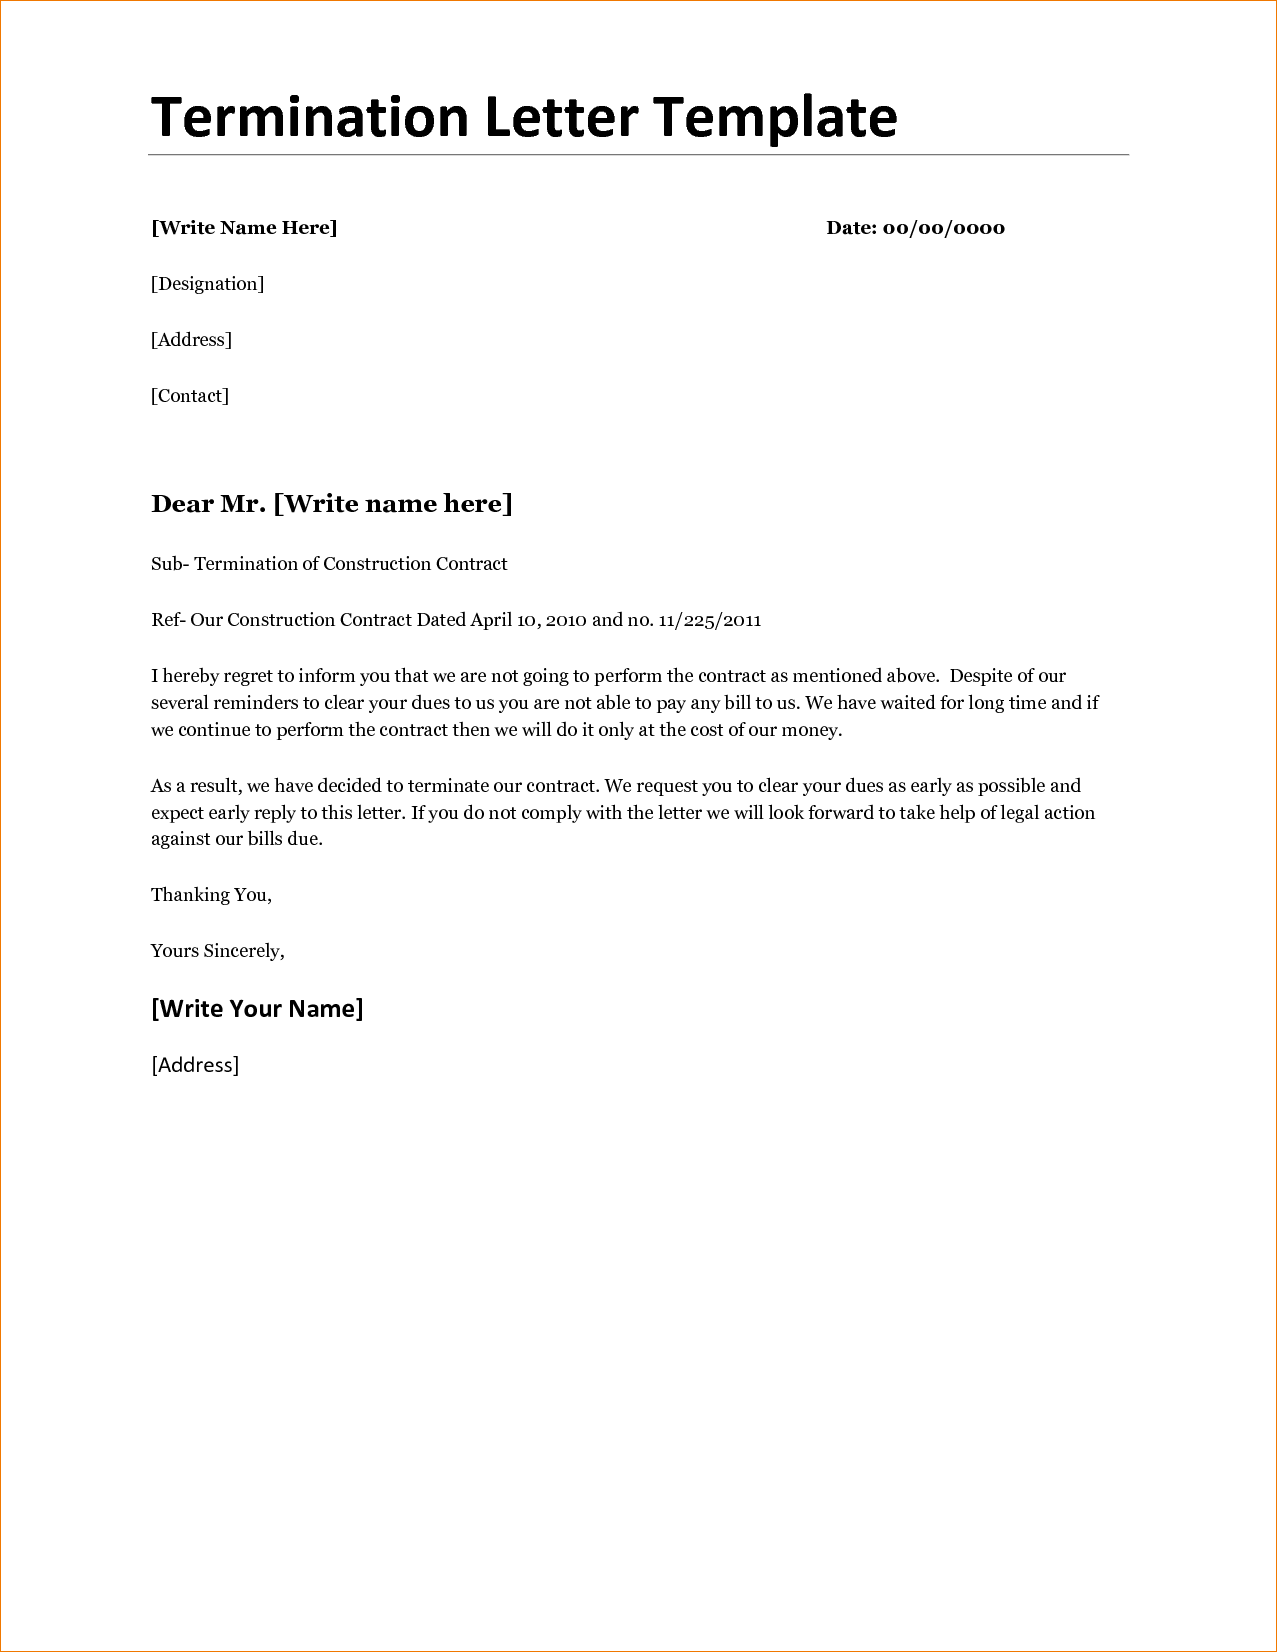 letter of termination 2 contract agreement template templateg letter cancellation 1429